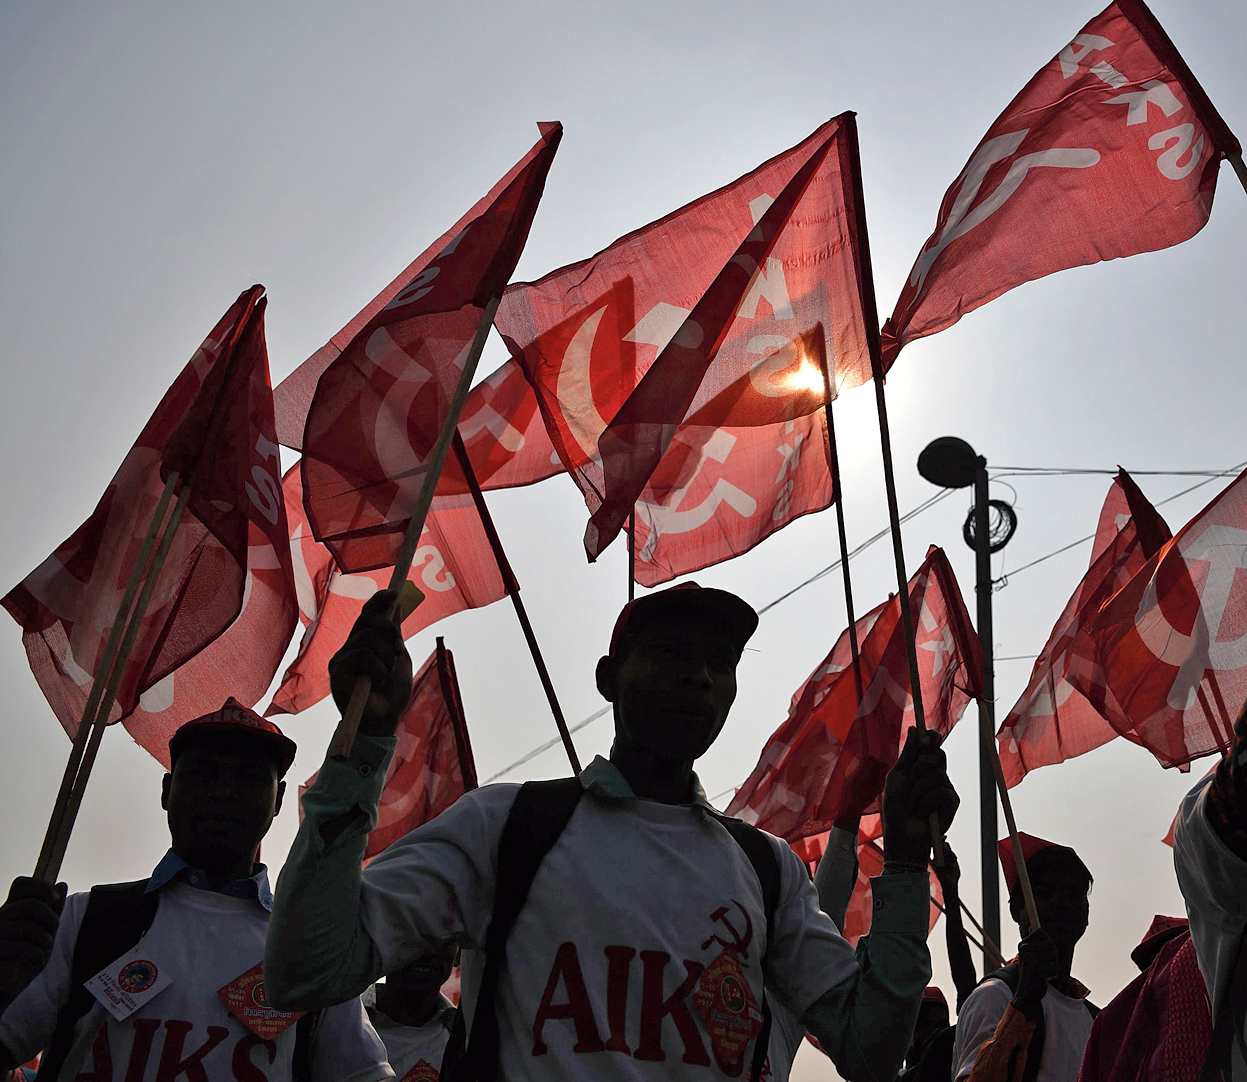 Farmers take part in a march organised by the All India Kisan Sabha and Communist Party of India (Marxist) along with other leftist groups in New Delhi on November 29, 2018, calling for pro-farmer legislation in Parliament.